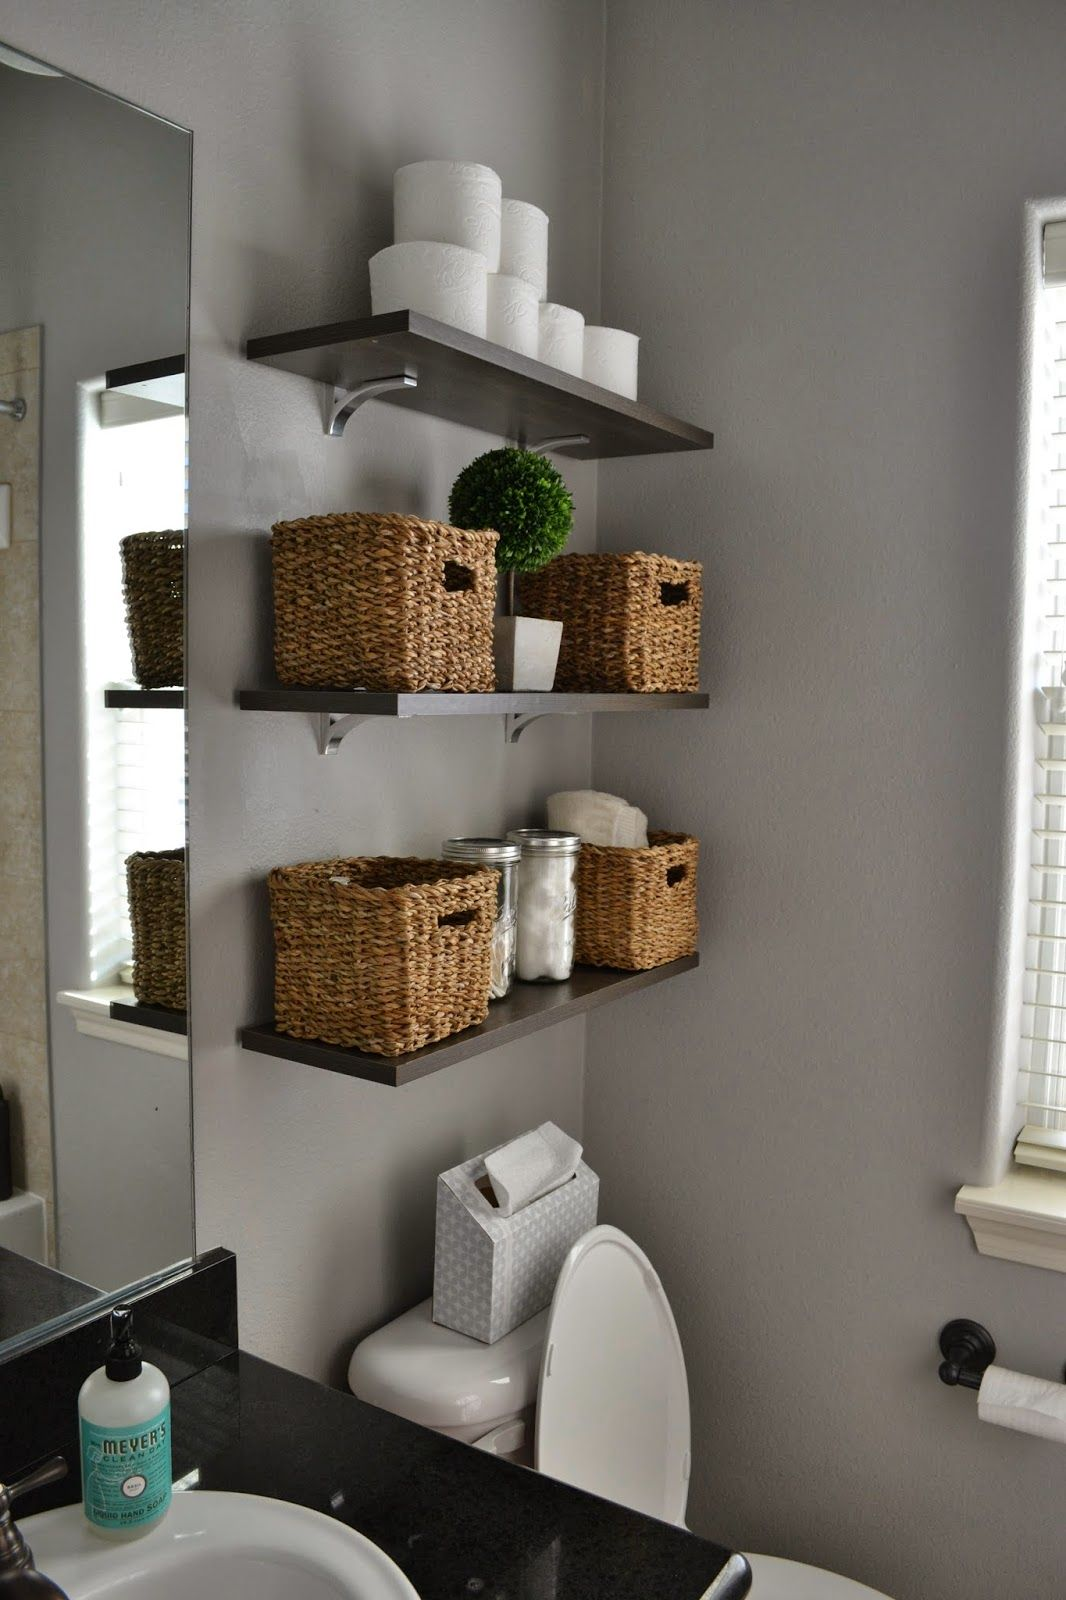 Category home decor page 7 - Fed Onto Bathroom Decoralbum In Home Decor Category More